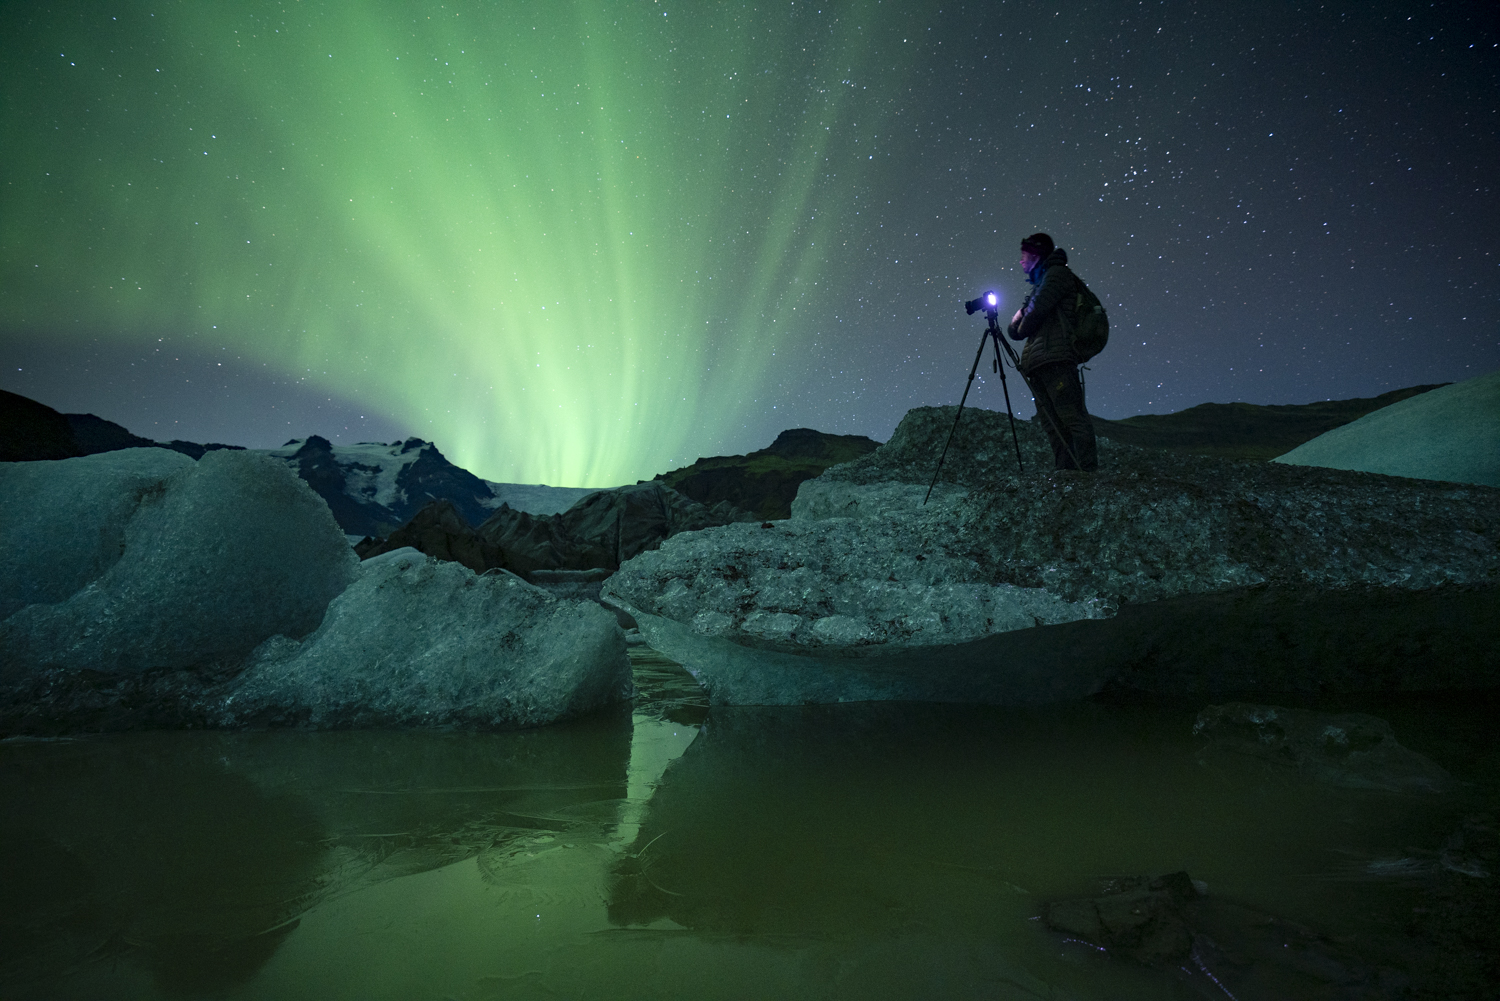 Northern lights, Iceland photography tour